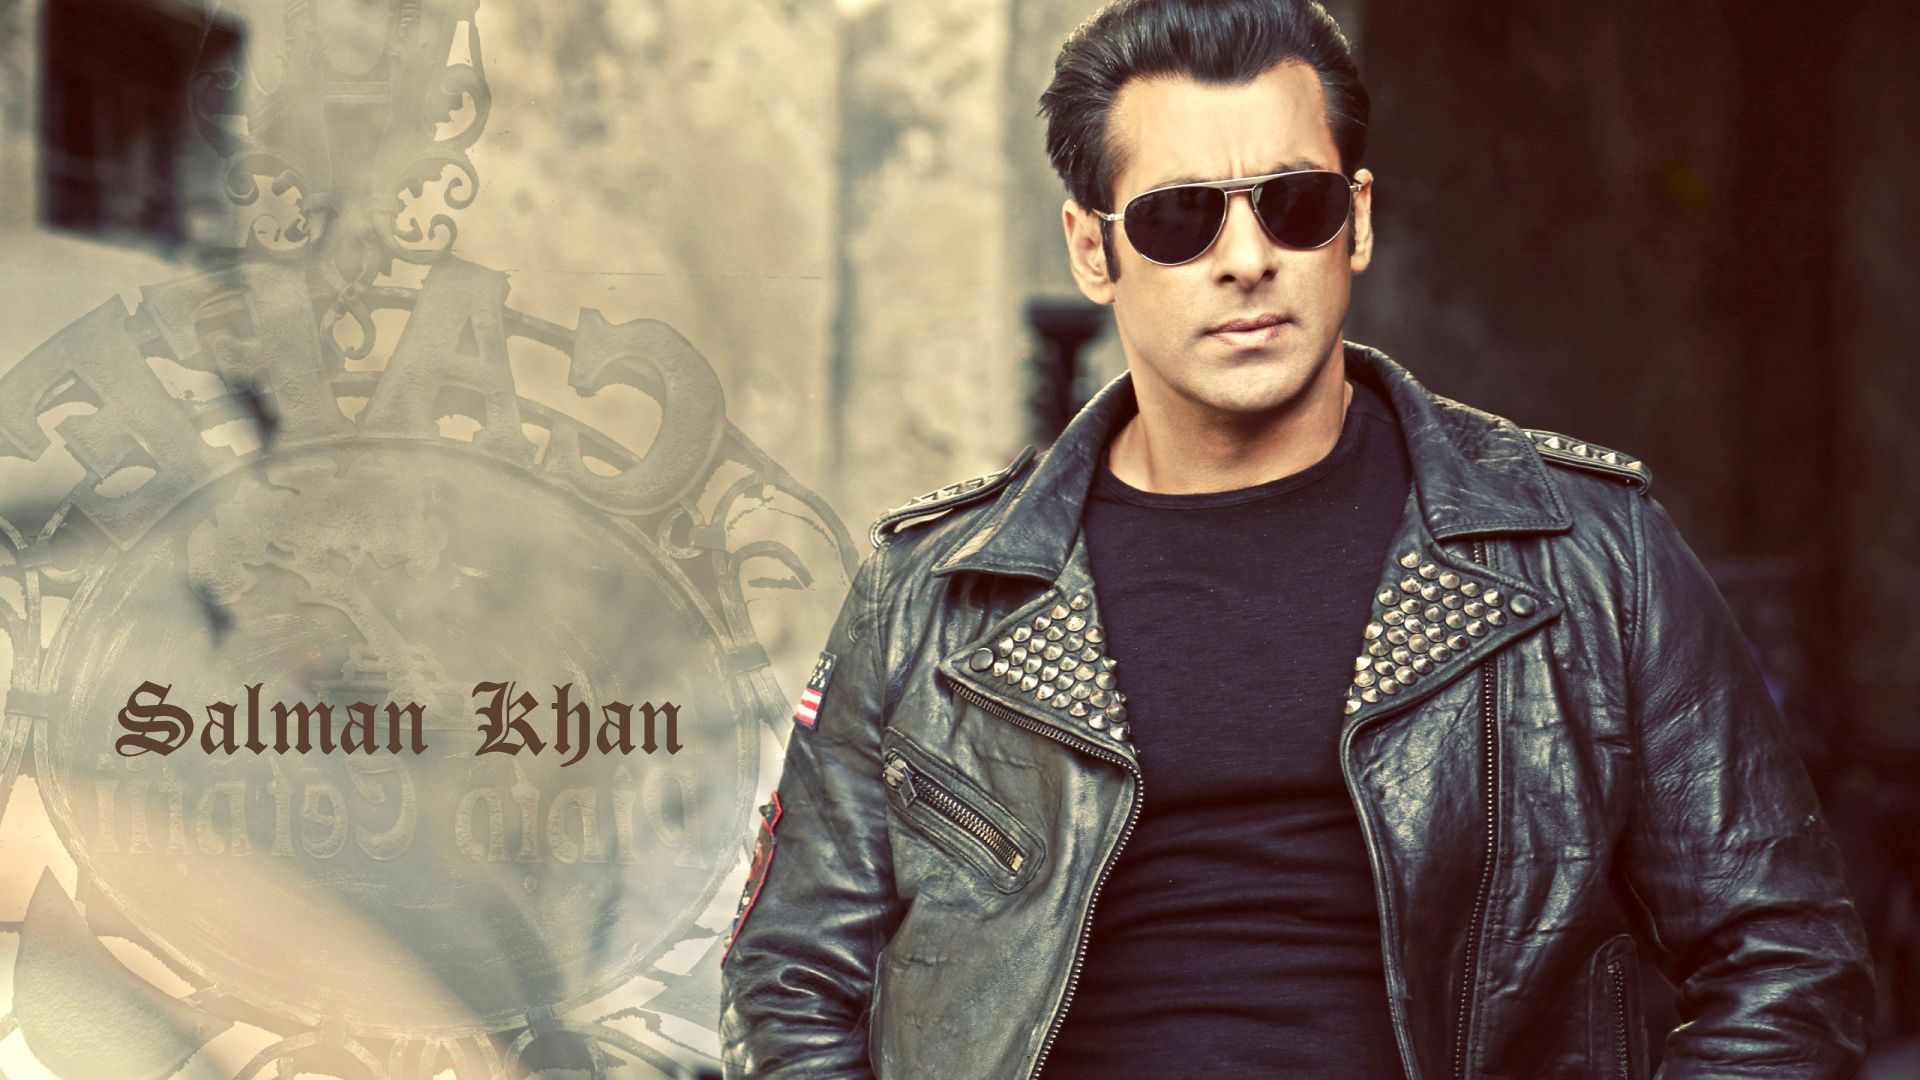 salman khan hd wallpapers 1080p | salman khan | pinterest | salman